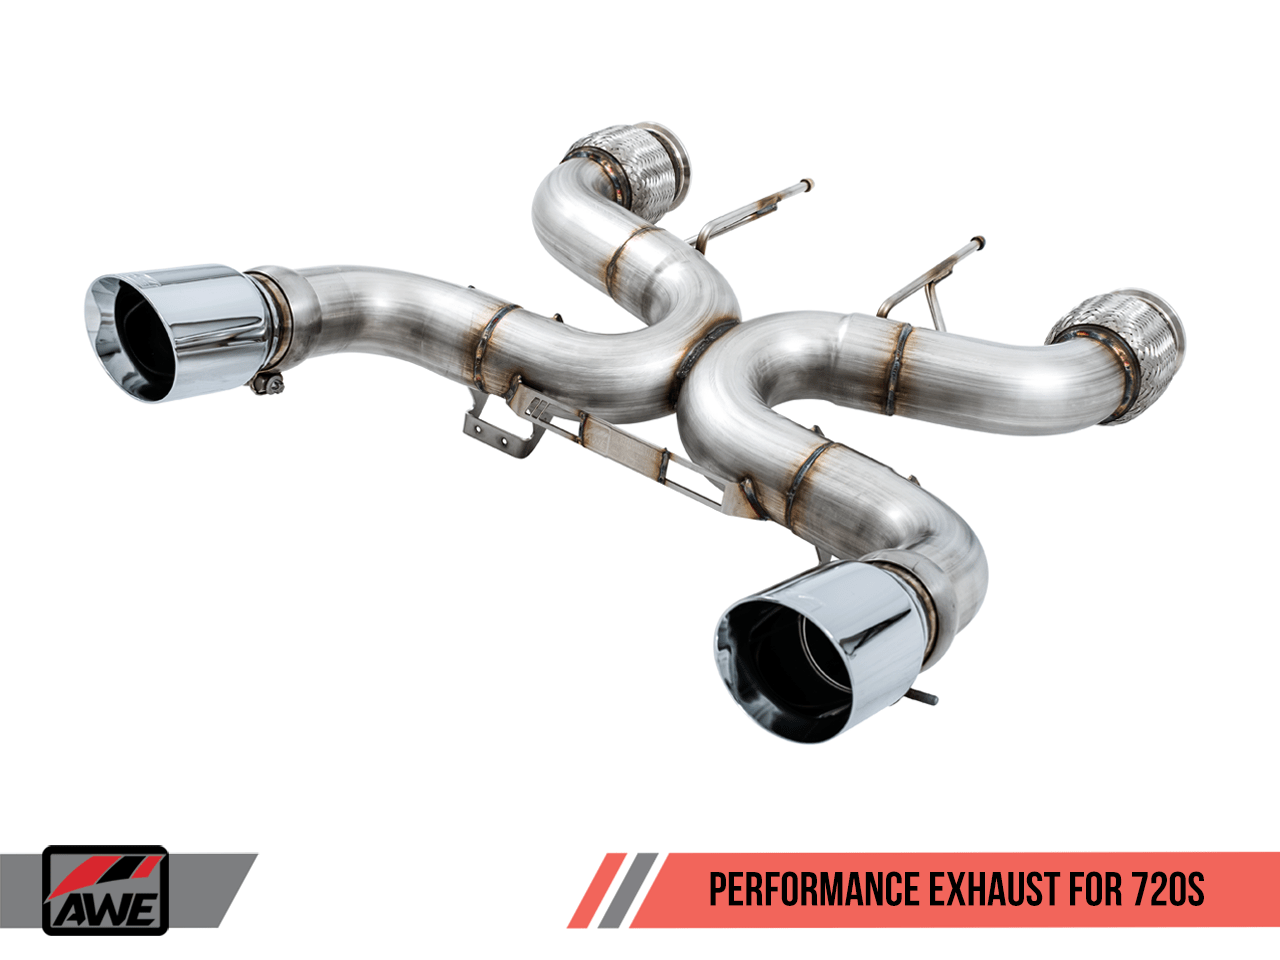 awe performance exhaust suite for